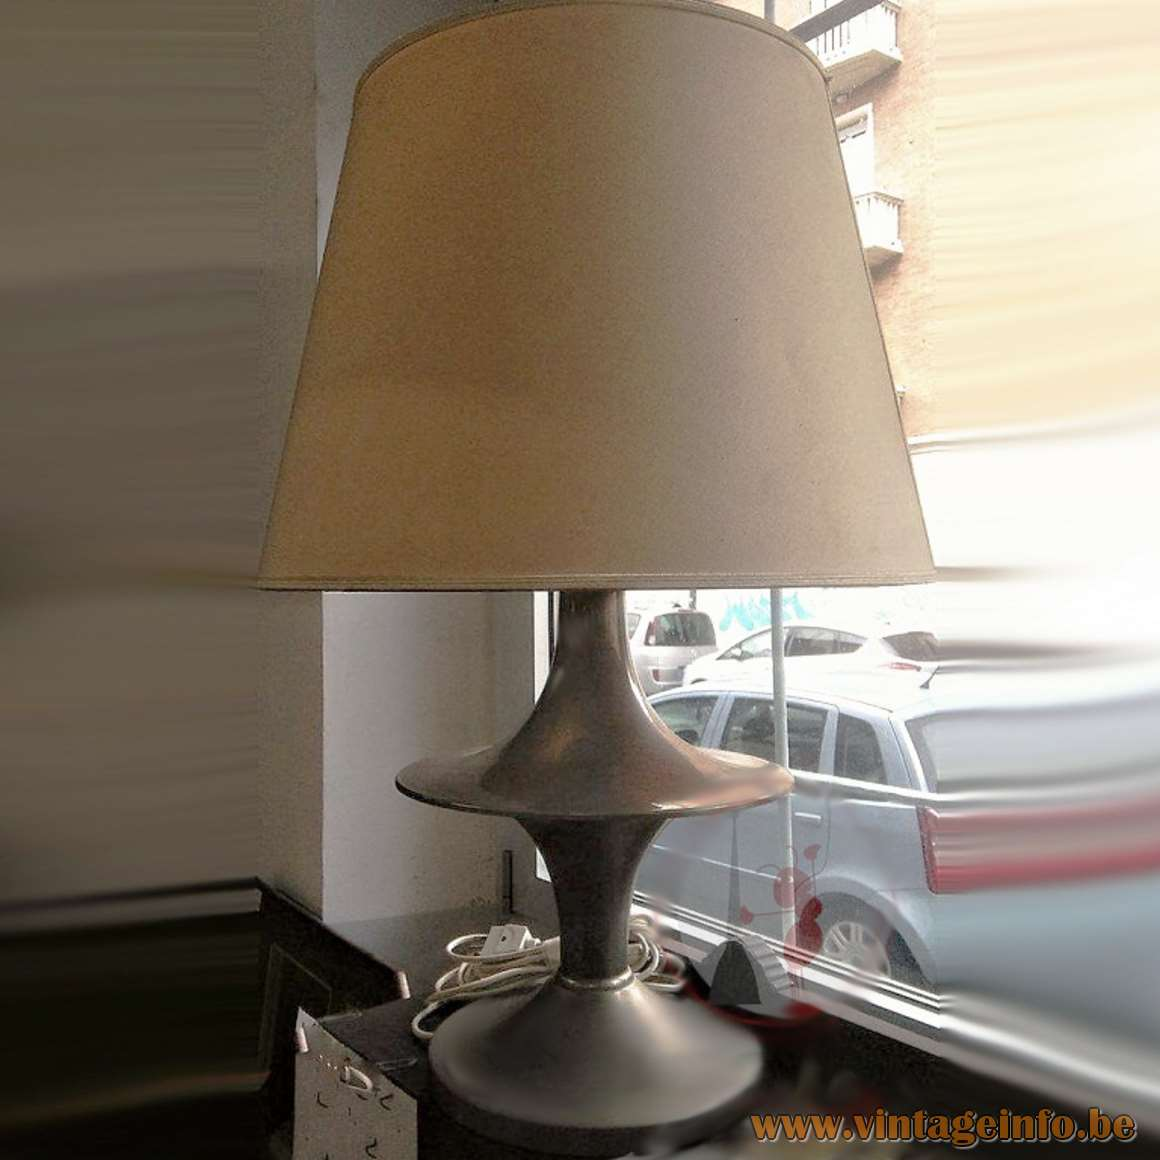 Vit Kellj Table Lamp nickel plated round light fabric lampshade 1970s MCM